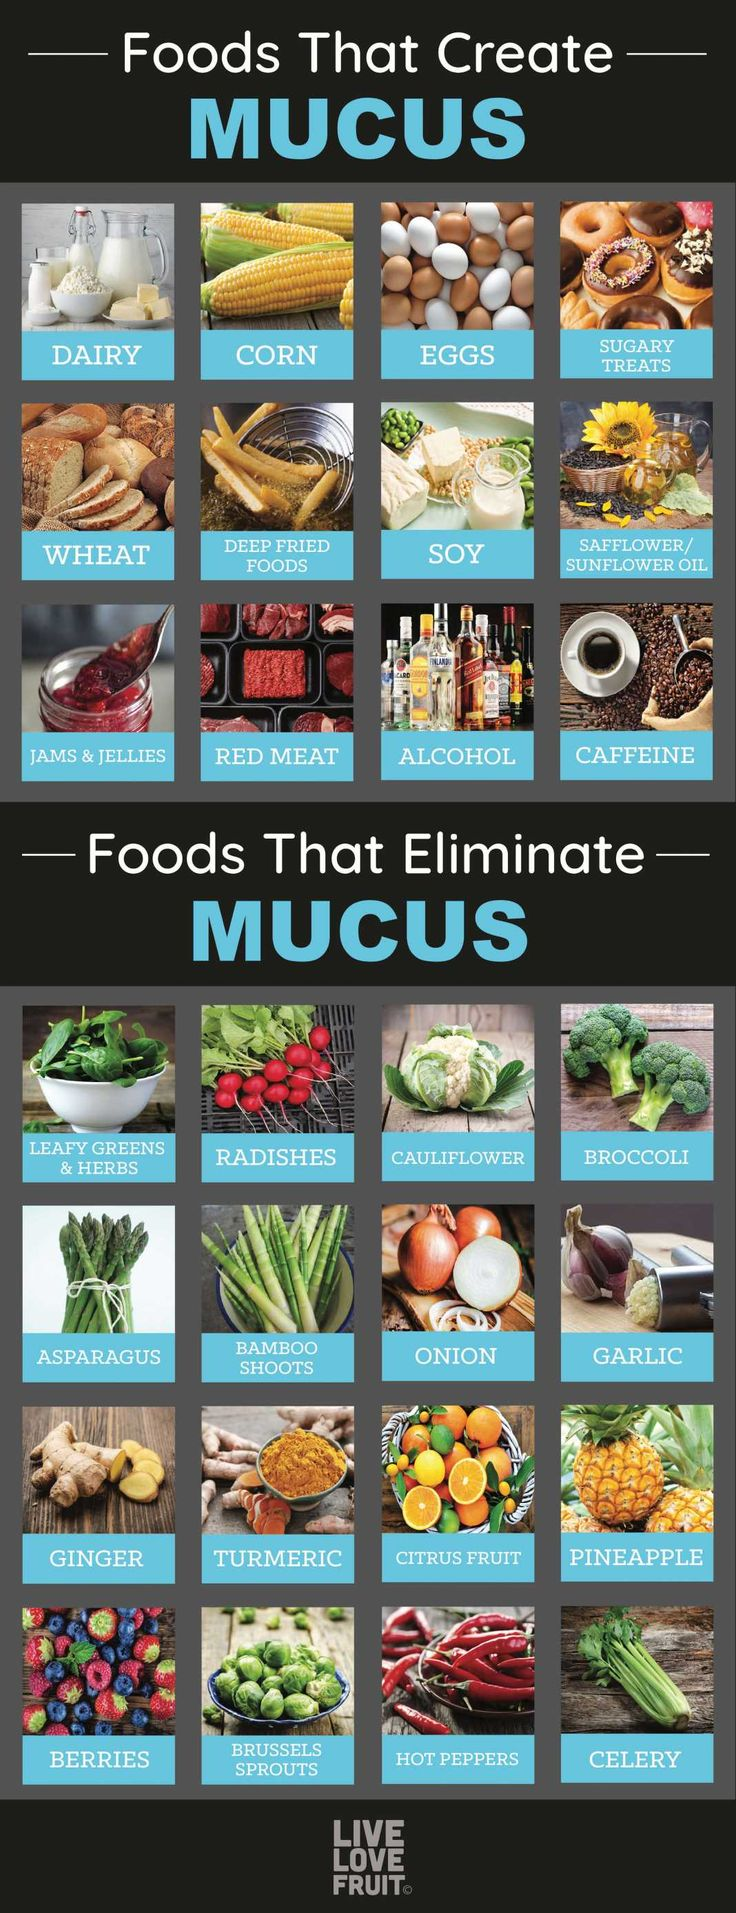 12 Foods That Cause Excessive Mucus In The Body (and 14 Foods That Eliminate It!... 1